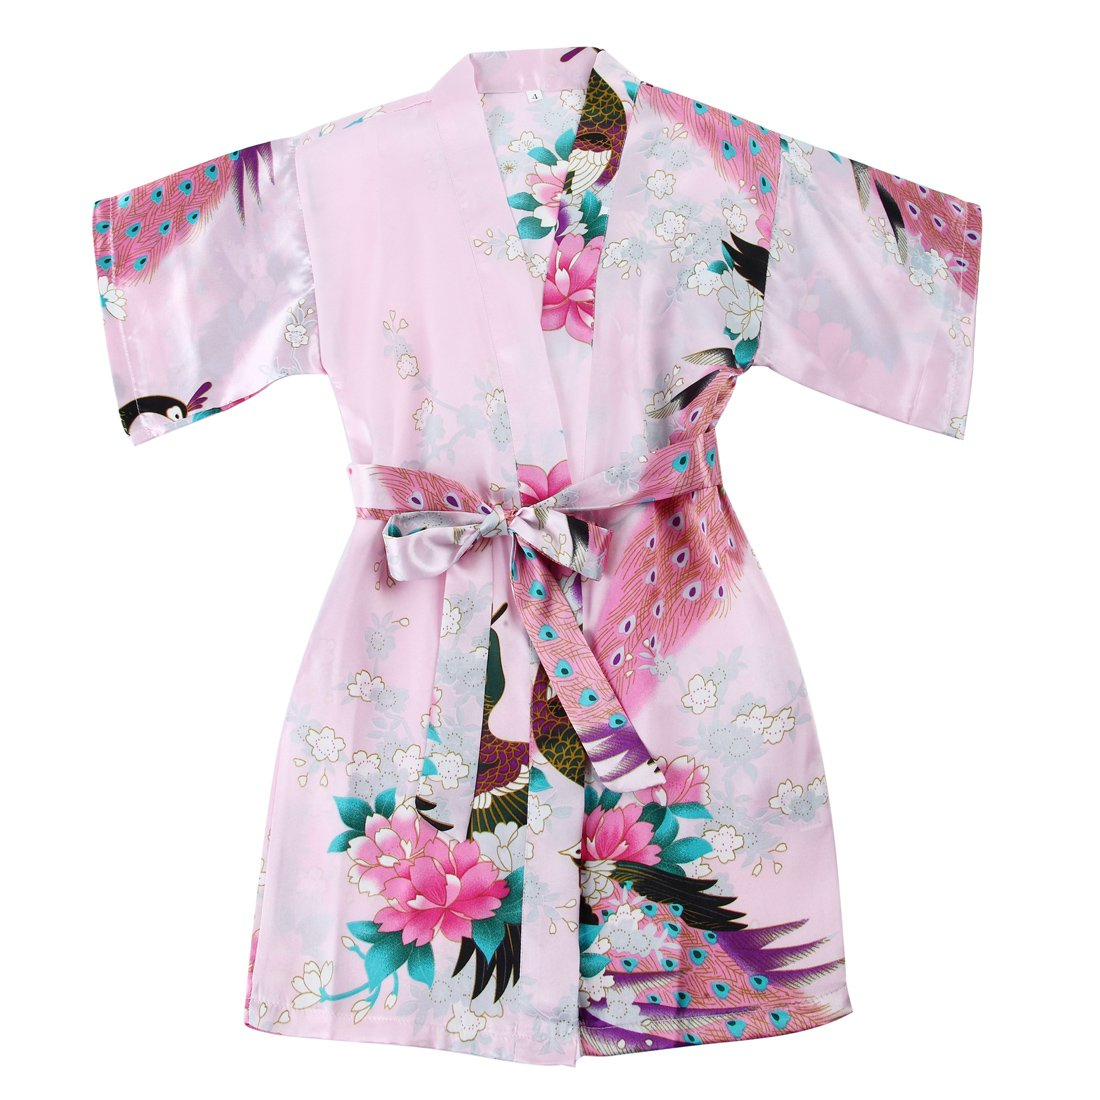 WonderFit Girls Stain Kimono Peacock Flower Robe for Spa Wedding Birthday Pink 11-12